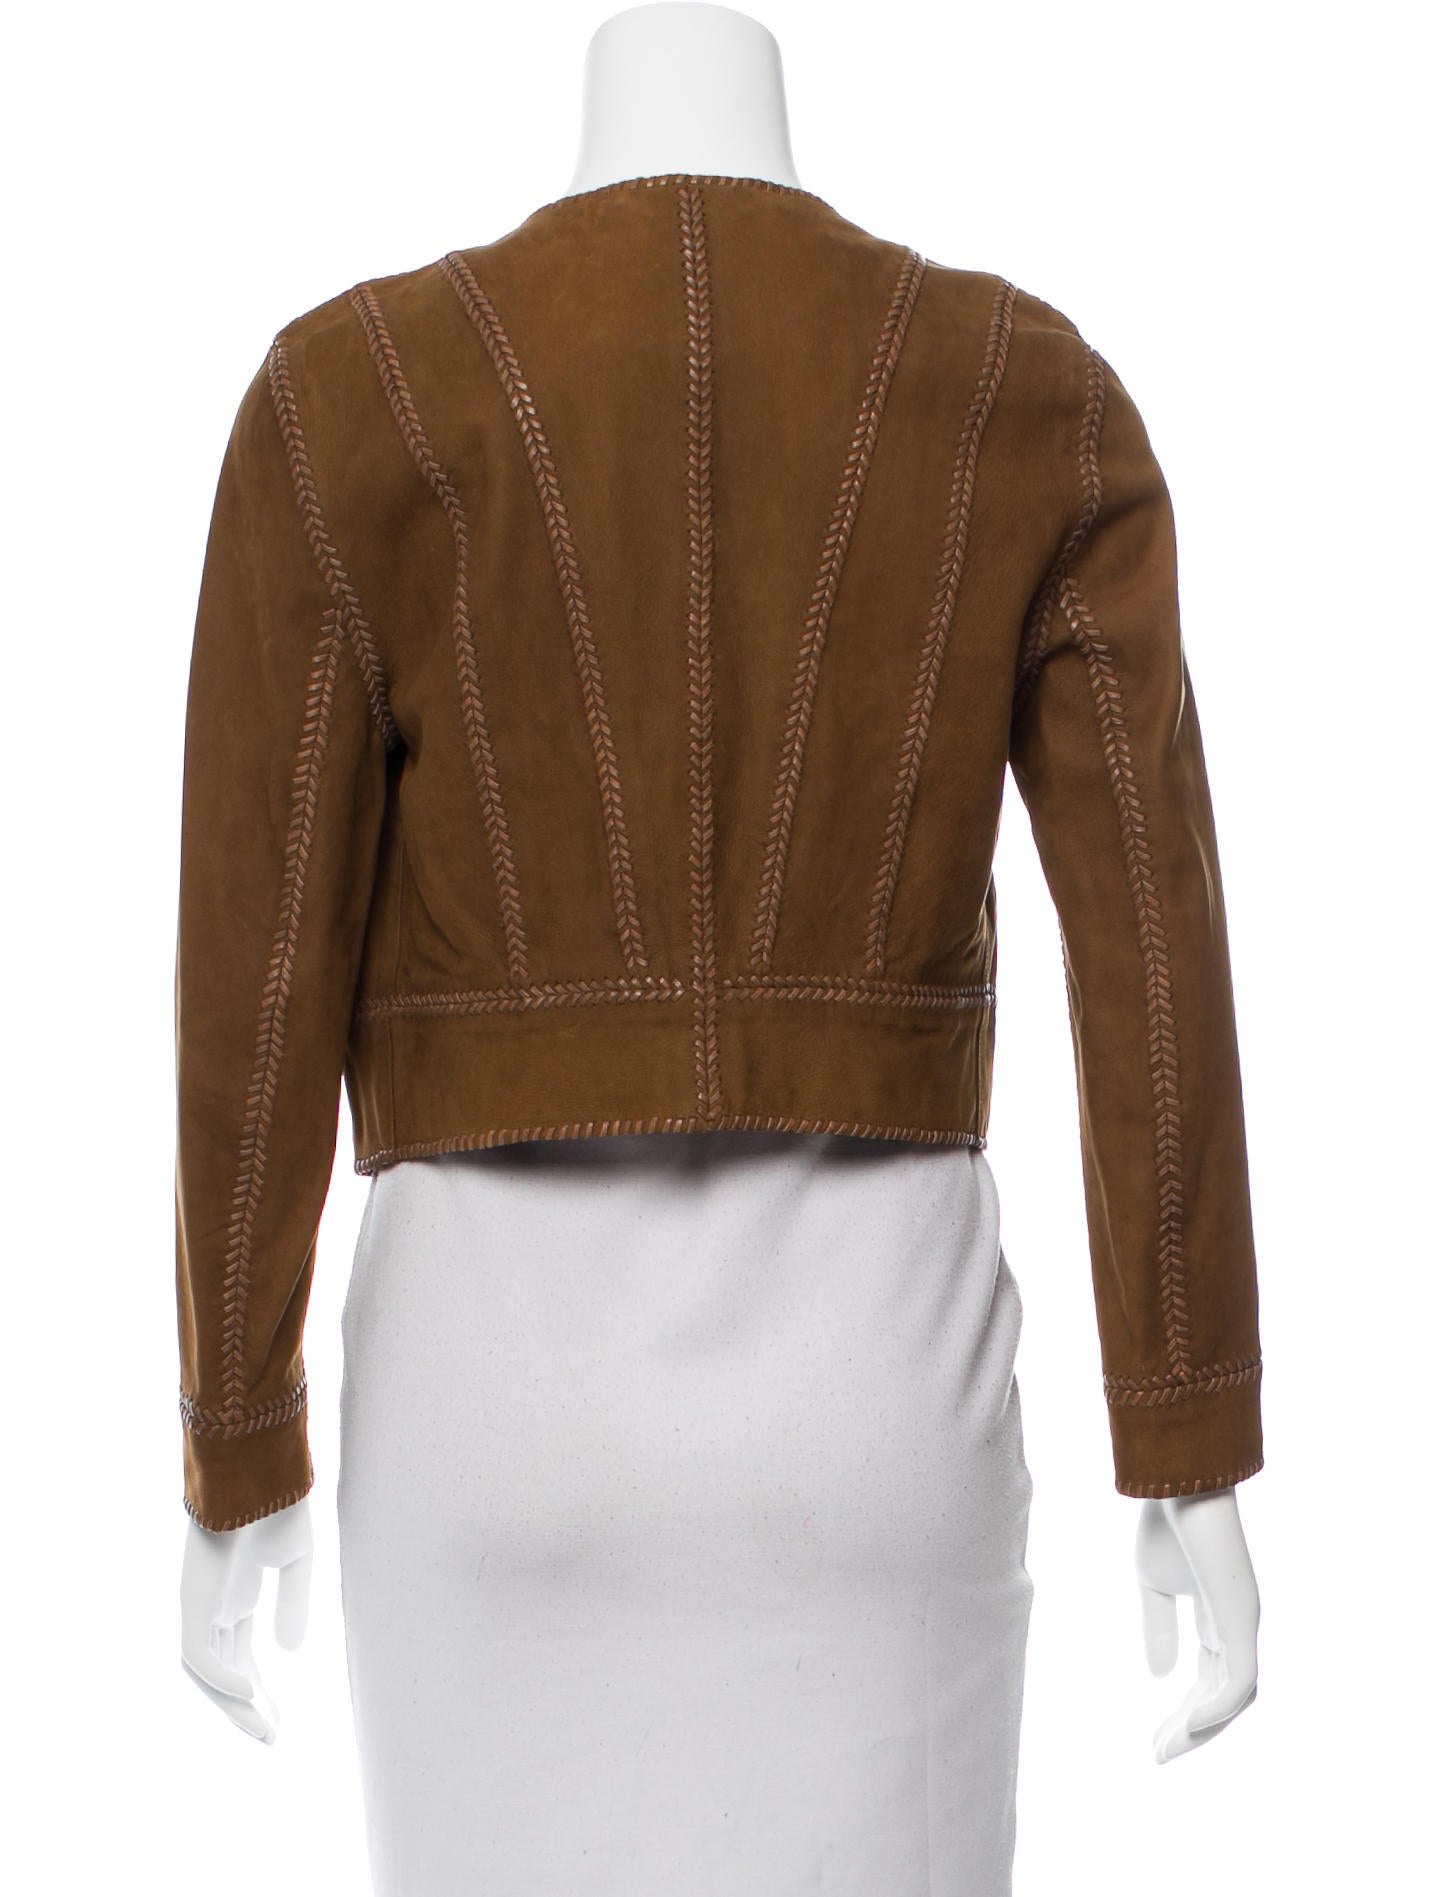 Suede Jacket Outfits For Men 20 Ways To Wear A Suede Jacket: Ralph Lauren Cropped Suede Jacket